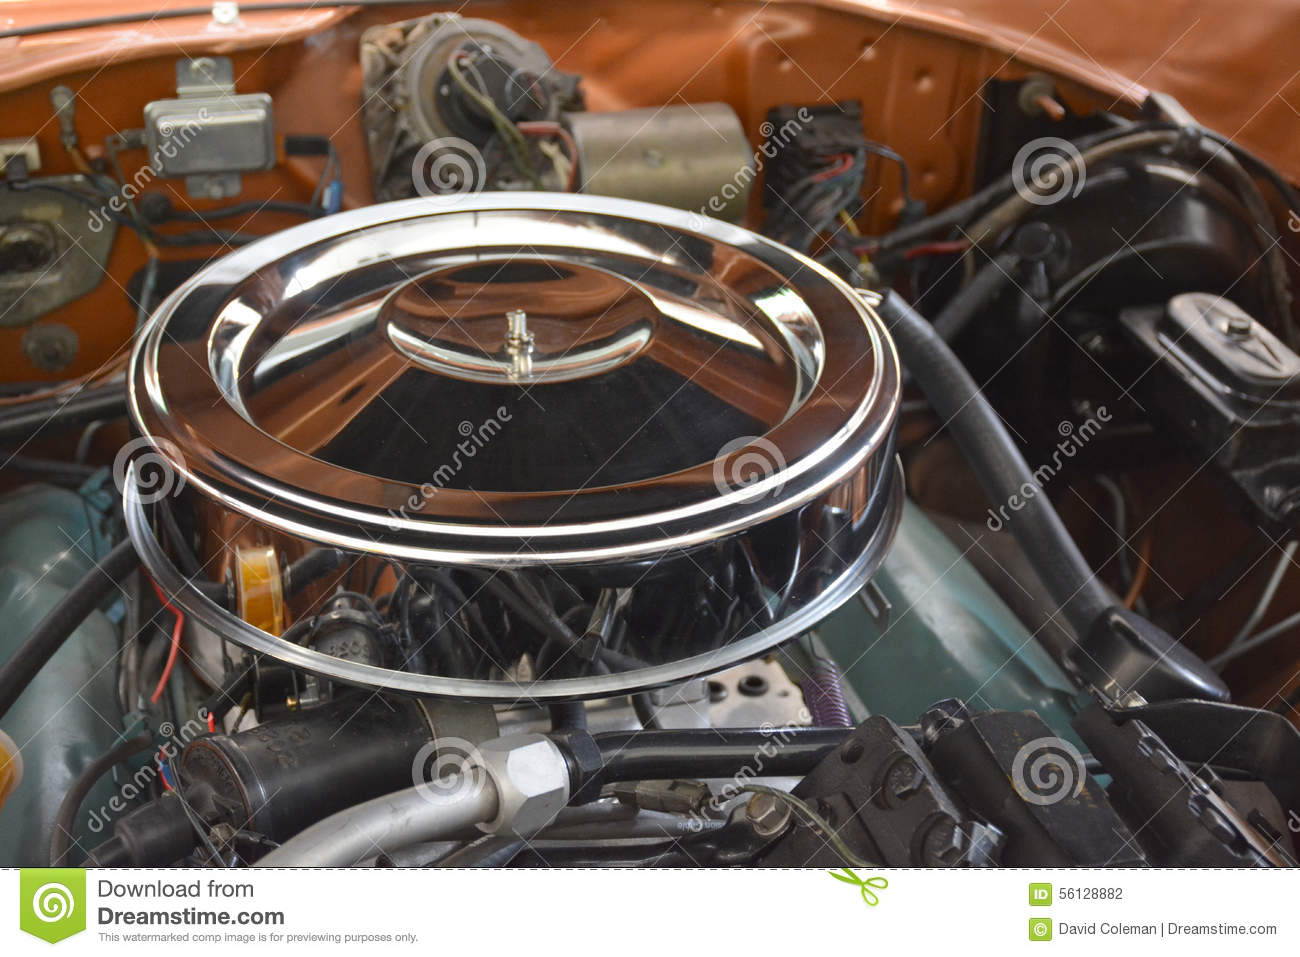 Muscle Car Engine Air Cleaners : Antique engine detail stock photo image